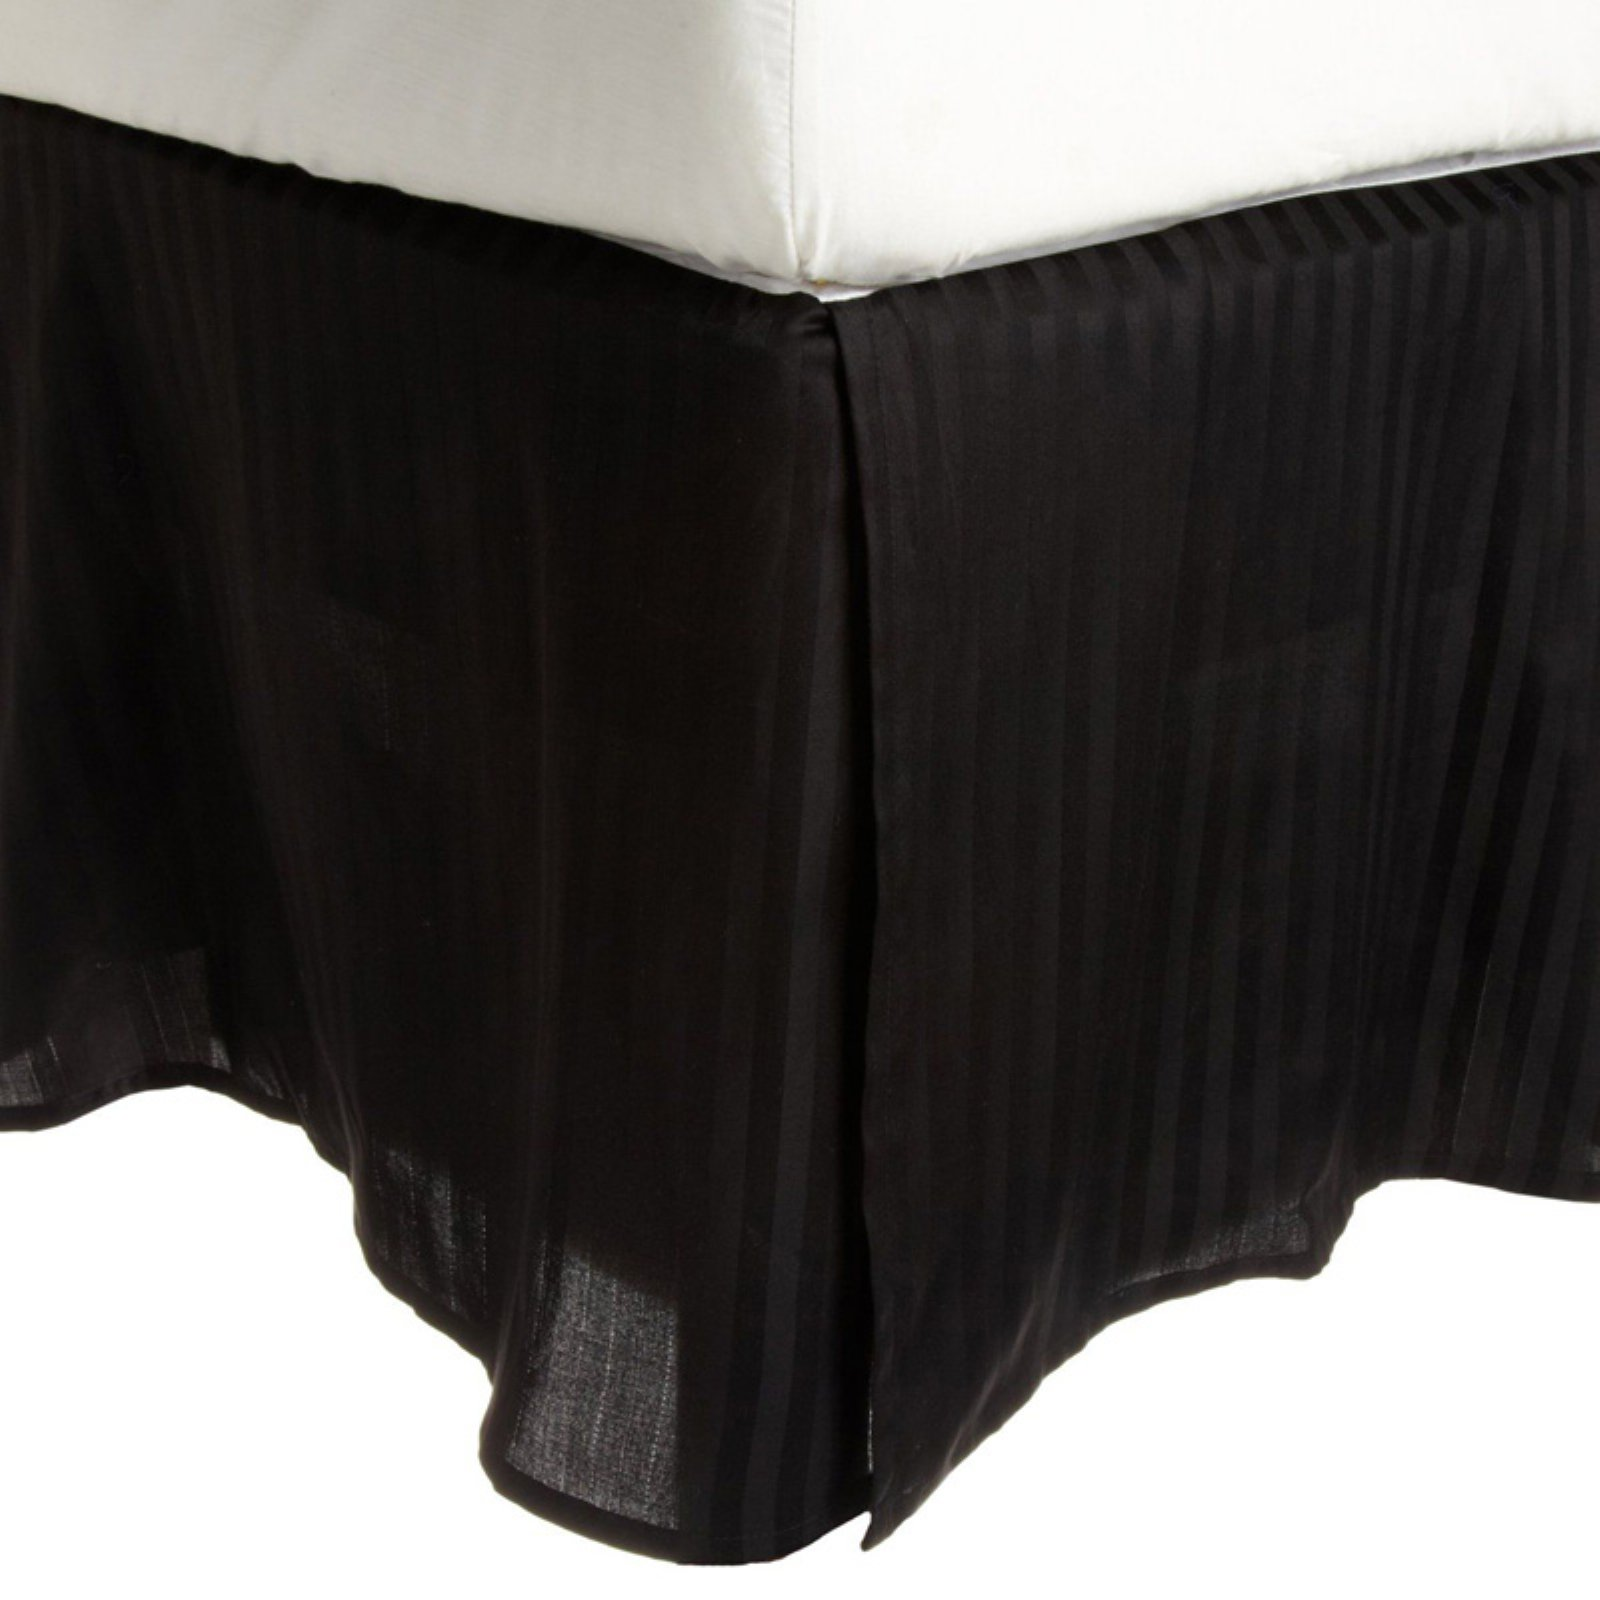 Superior 300 Thread Count Long-Staple Combed Cotton Sateen Weave Stripe Bedskirt